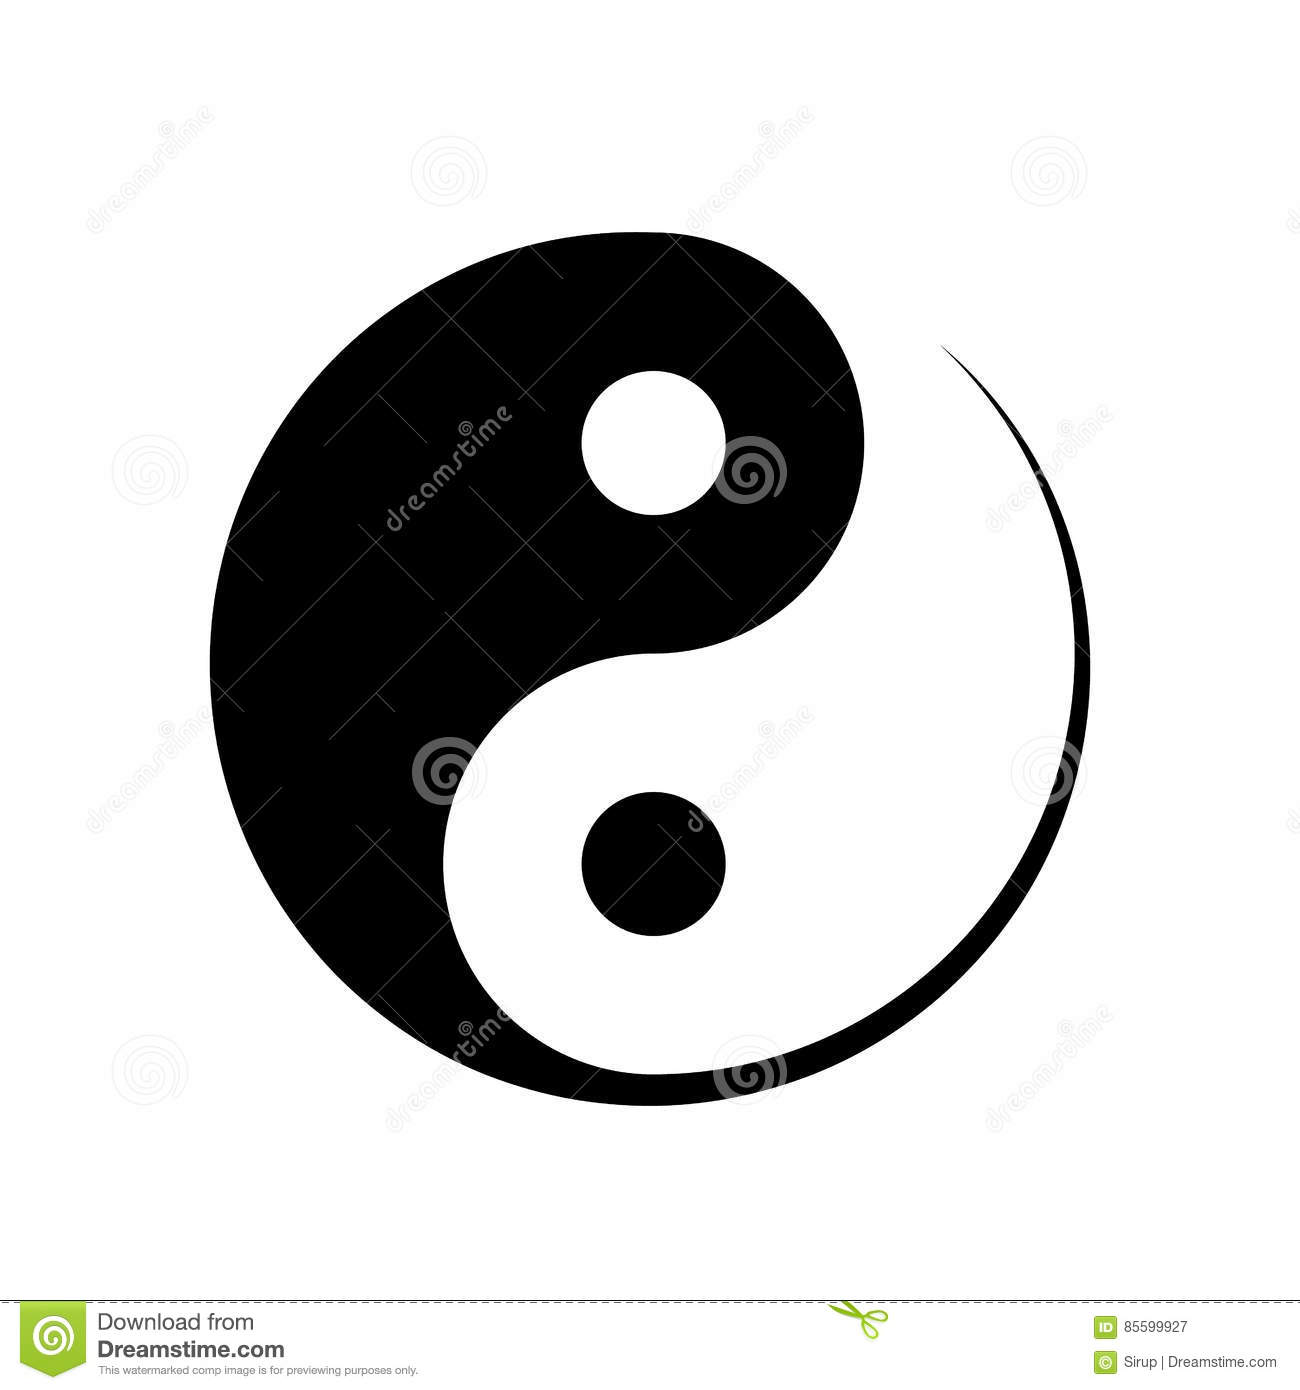 an analysis of the philosophy of yin yang An analysis of the martial arts and the taoist philosophy of yin and yang home geen categorie an analysis of the martial arts and the taoist philosophy of yin and yang.